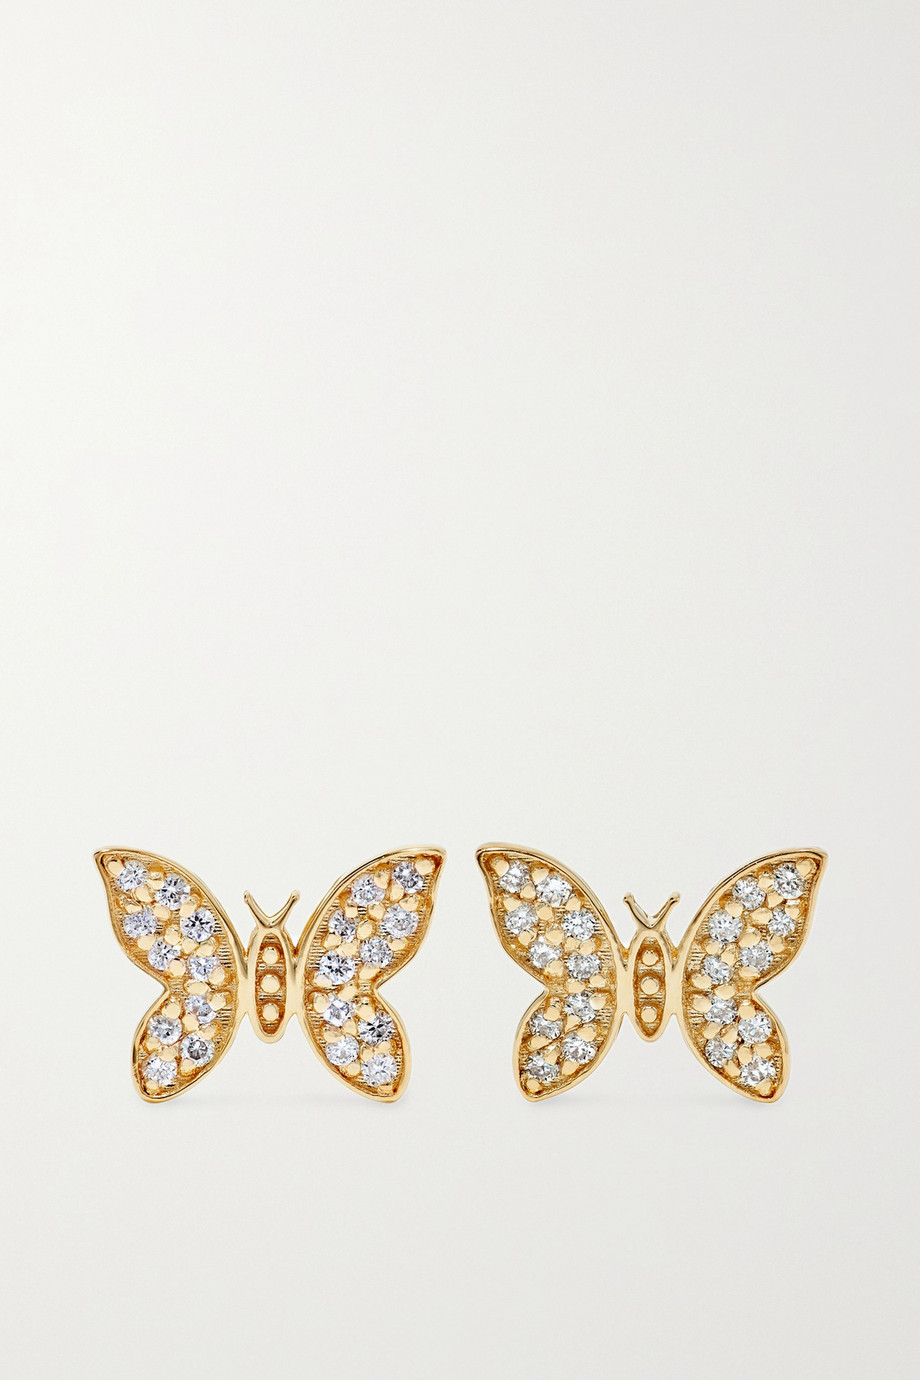 Sydney Evan 14-karat gold diamond earrings